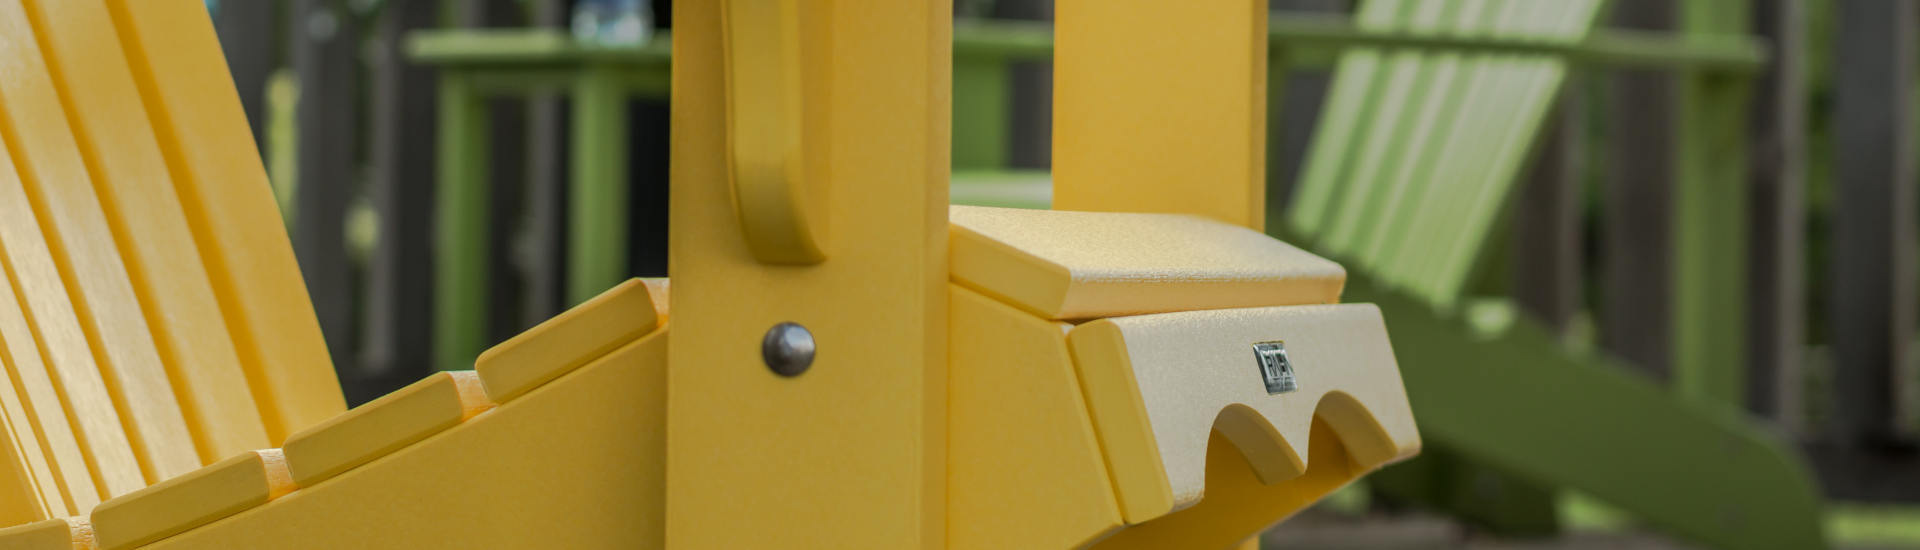 close up adirondack chair